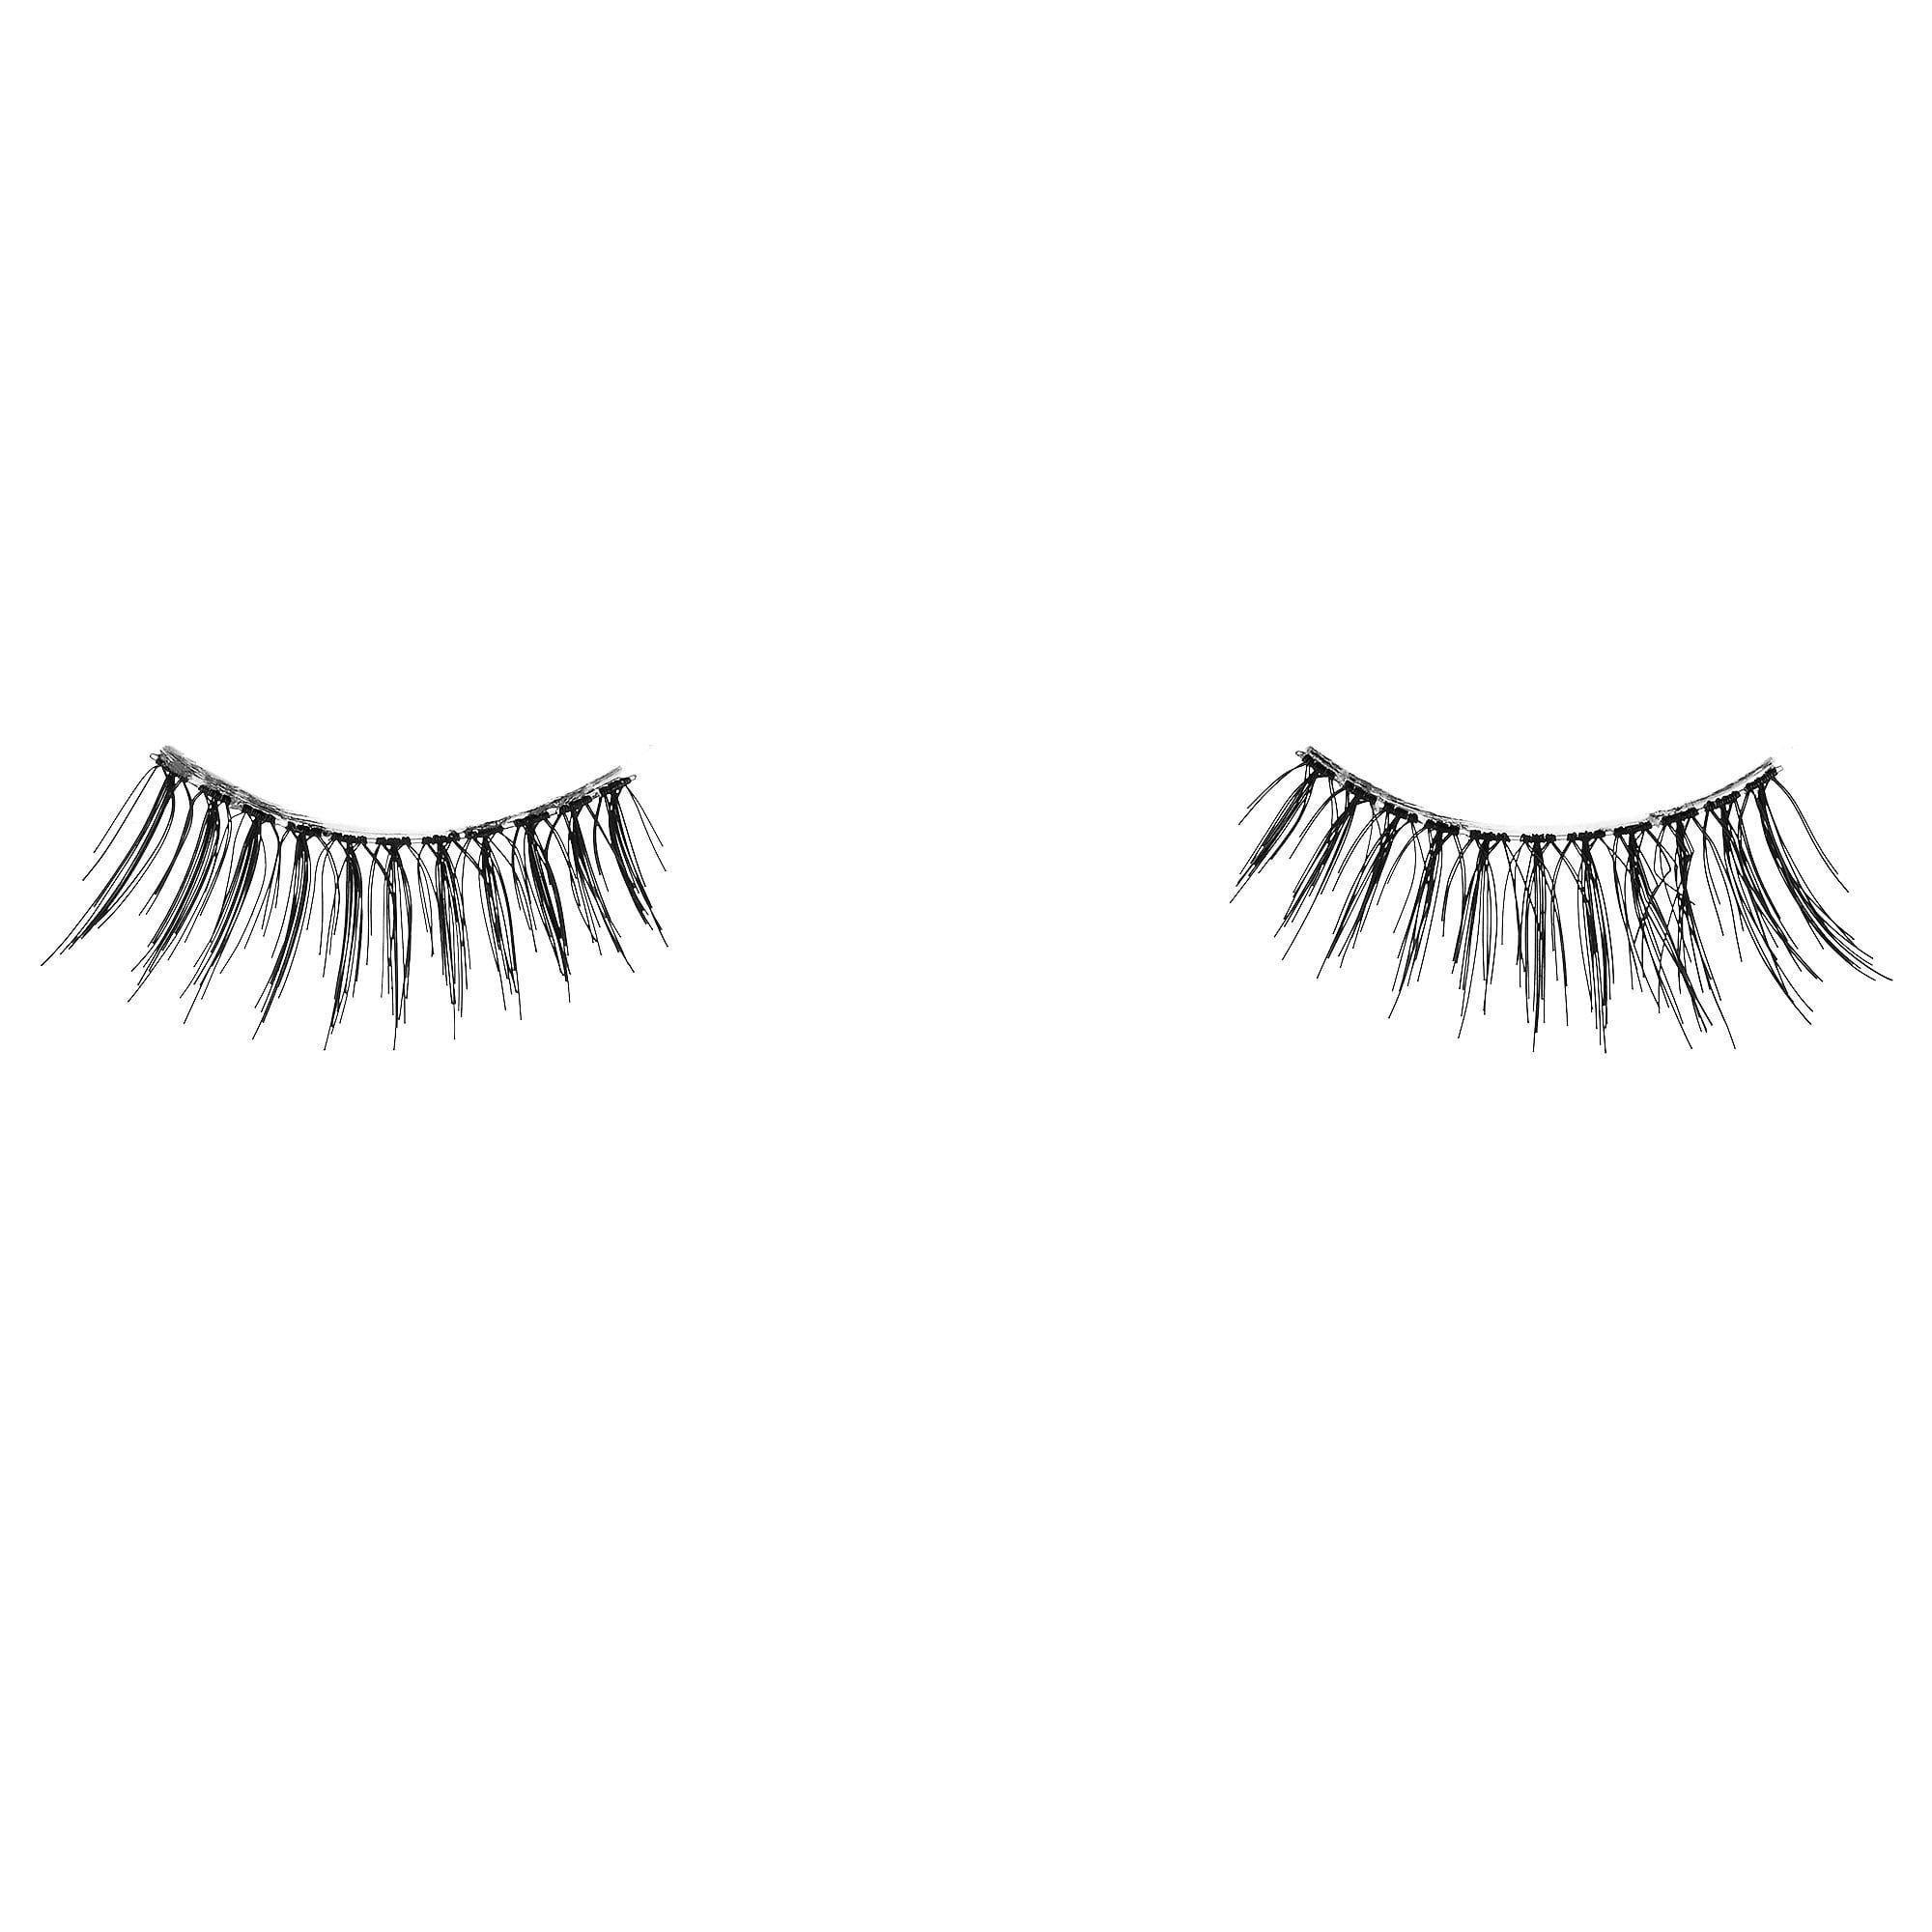 ab5a22b1263 Sephora Collection False Eye Lashes Sidekick #5 in 2019 | Products ...